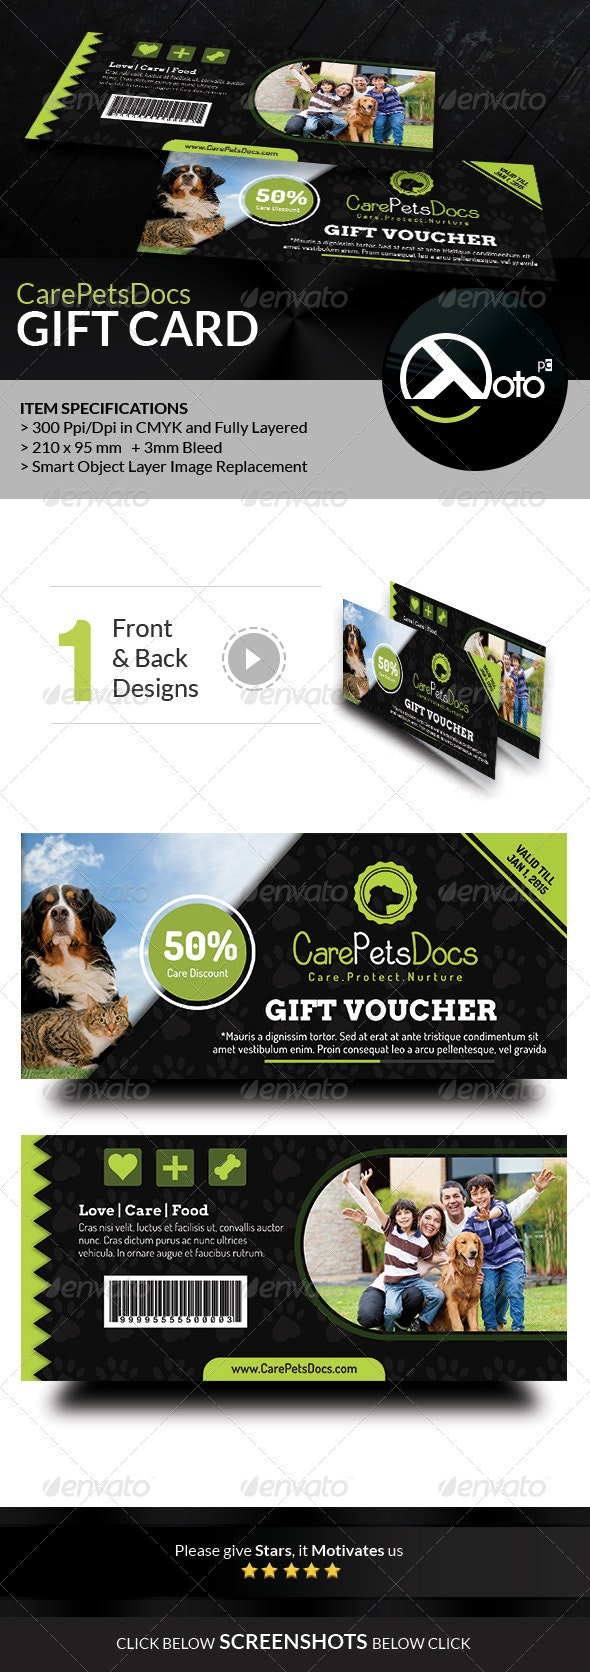 Care Pets Docs Veterinary Gift Vouchers  - Cards & Invites Print Templates